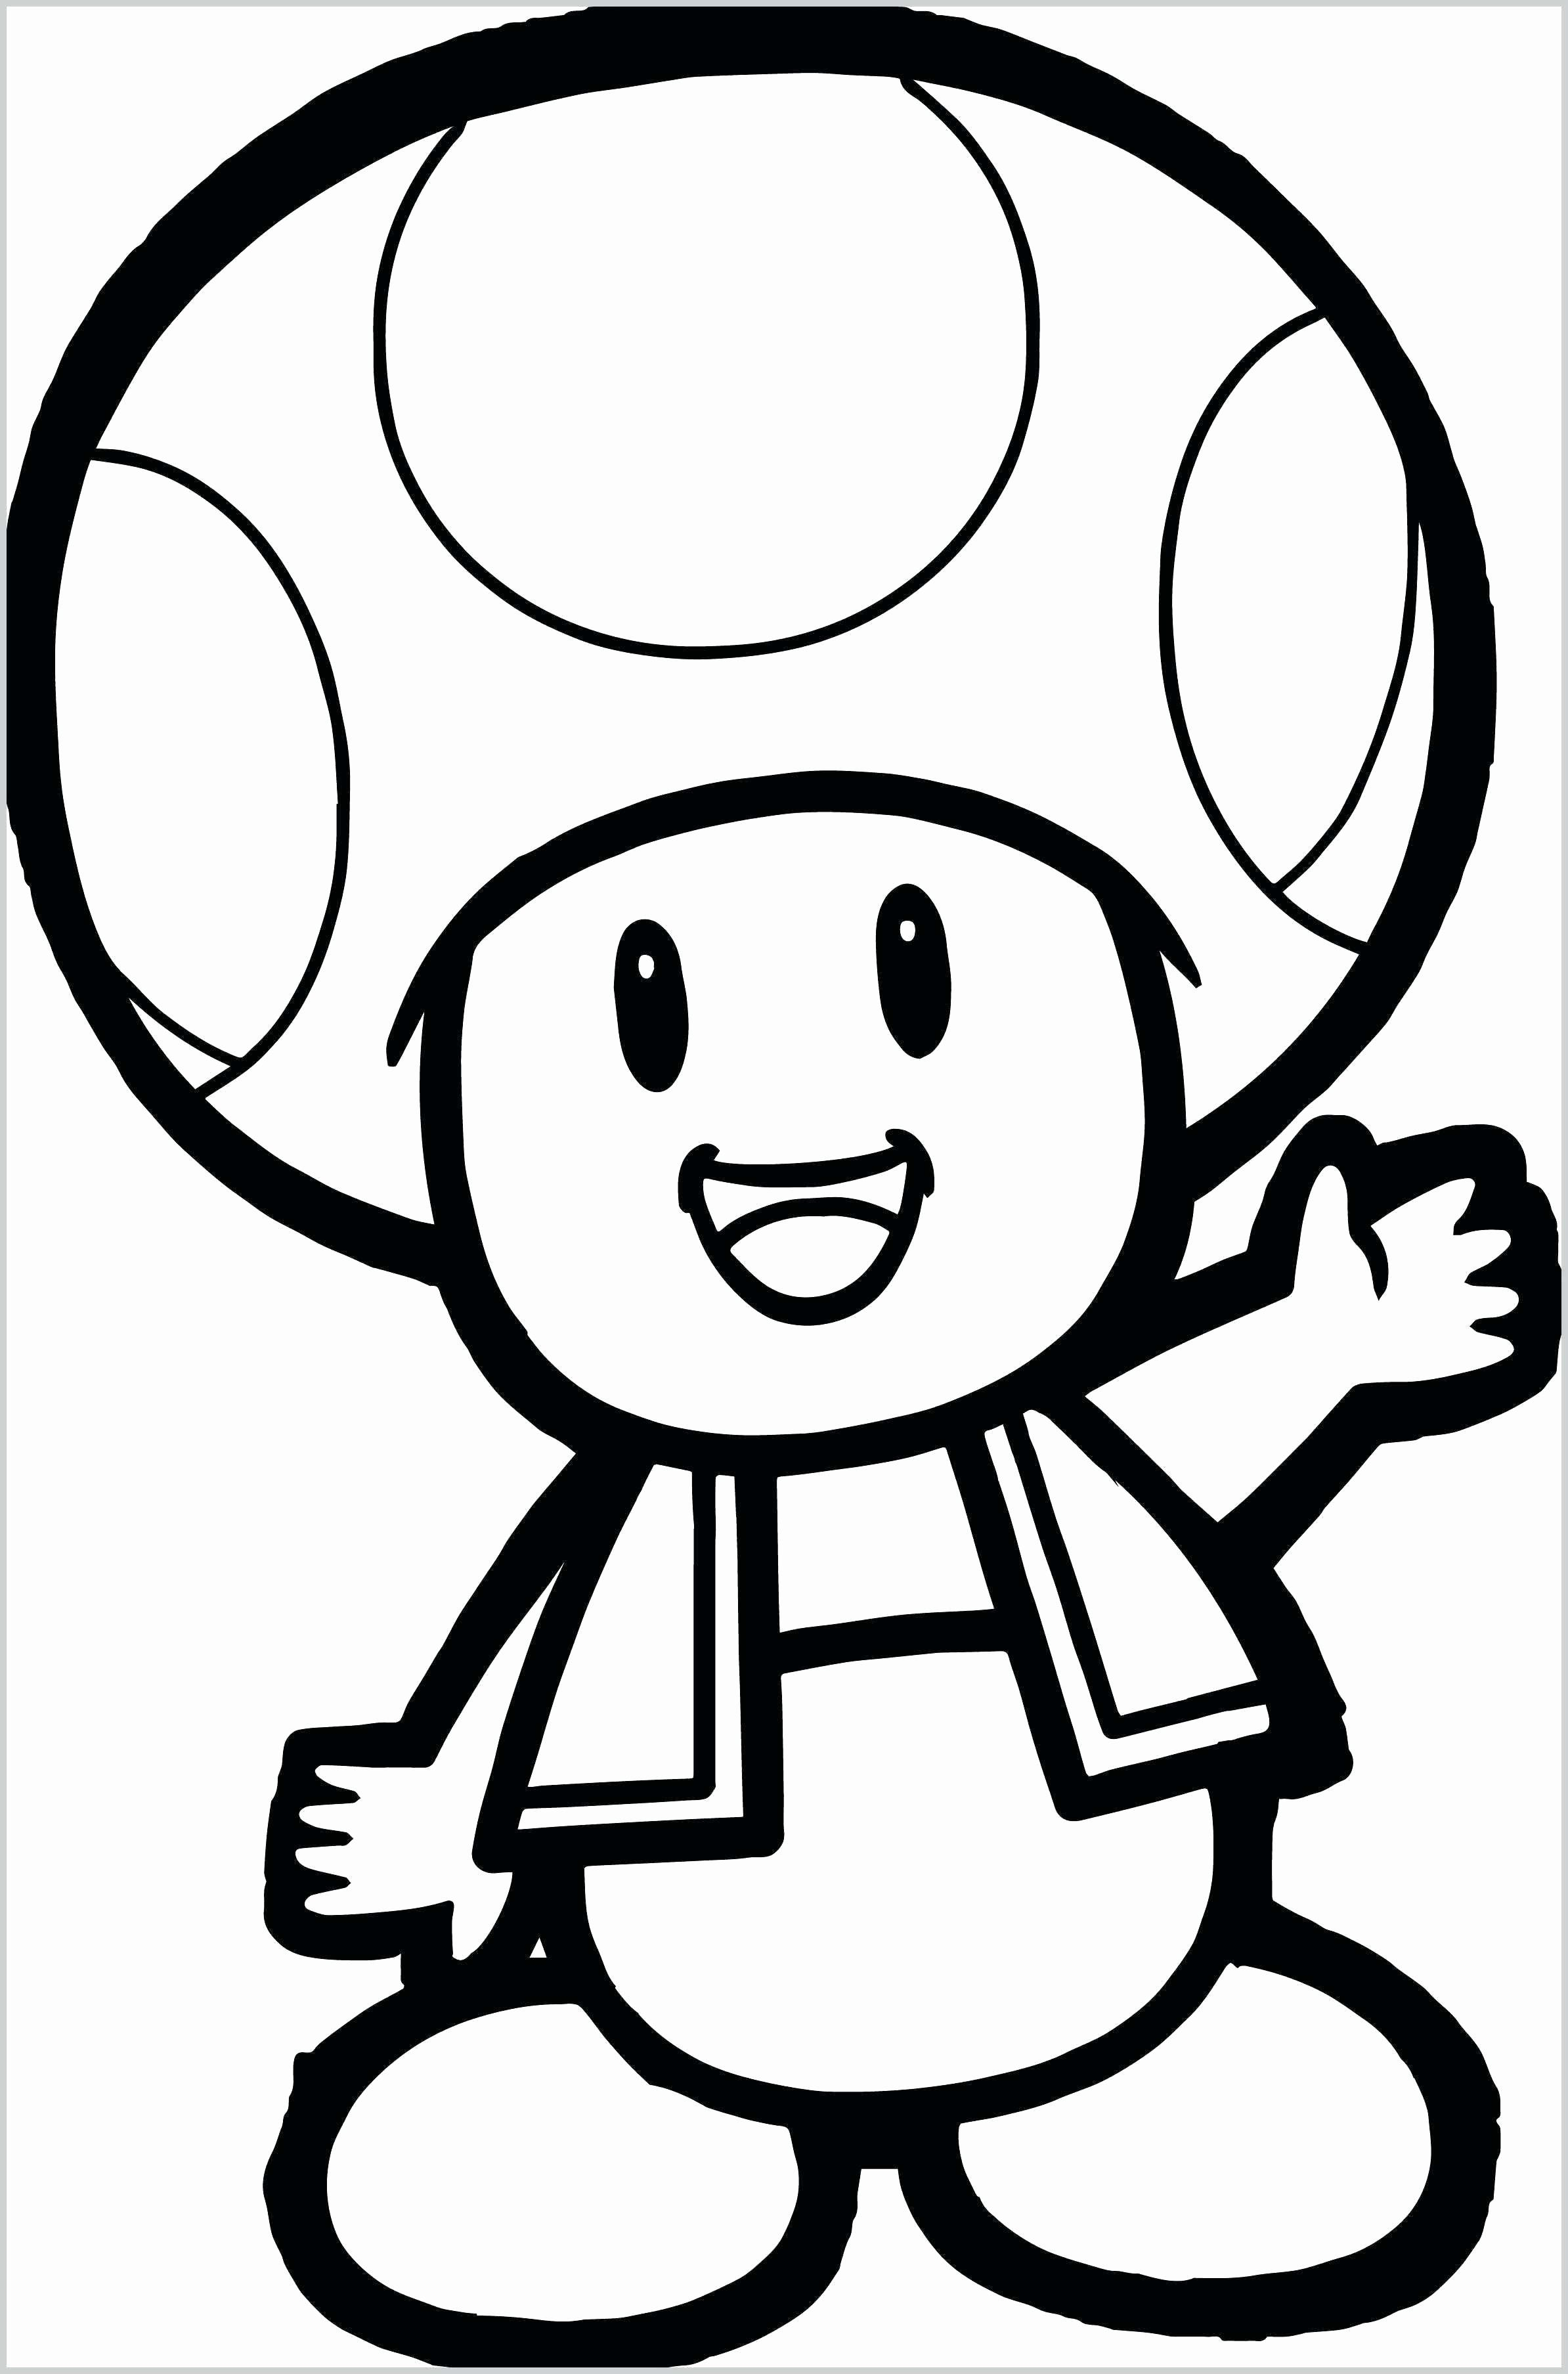 Dry Bones Coloring Pages Fresh Mario Bowser Coloring Pages Keynotesheet In 2020 Super Mario Coloring Pages Mario Coloring Pages Cute Coloring Pages